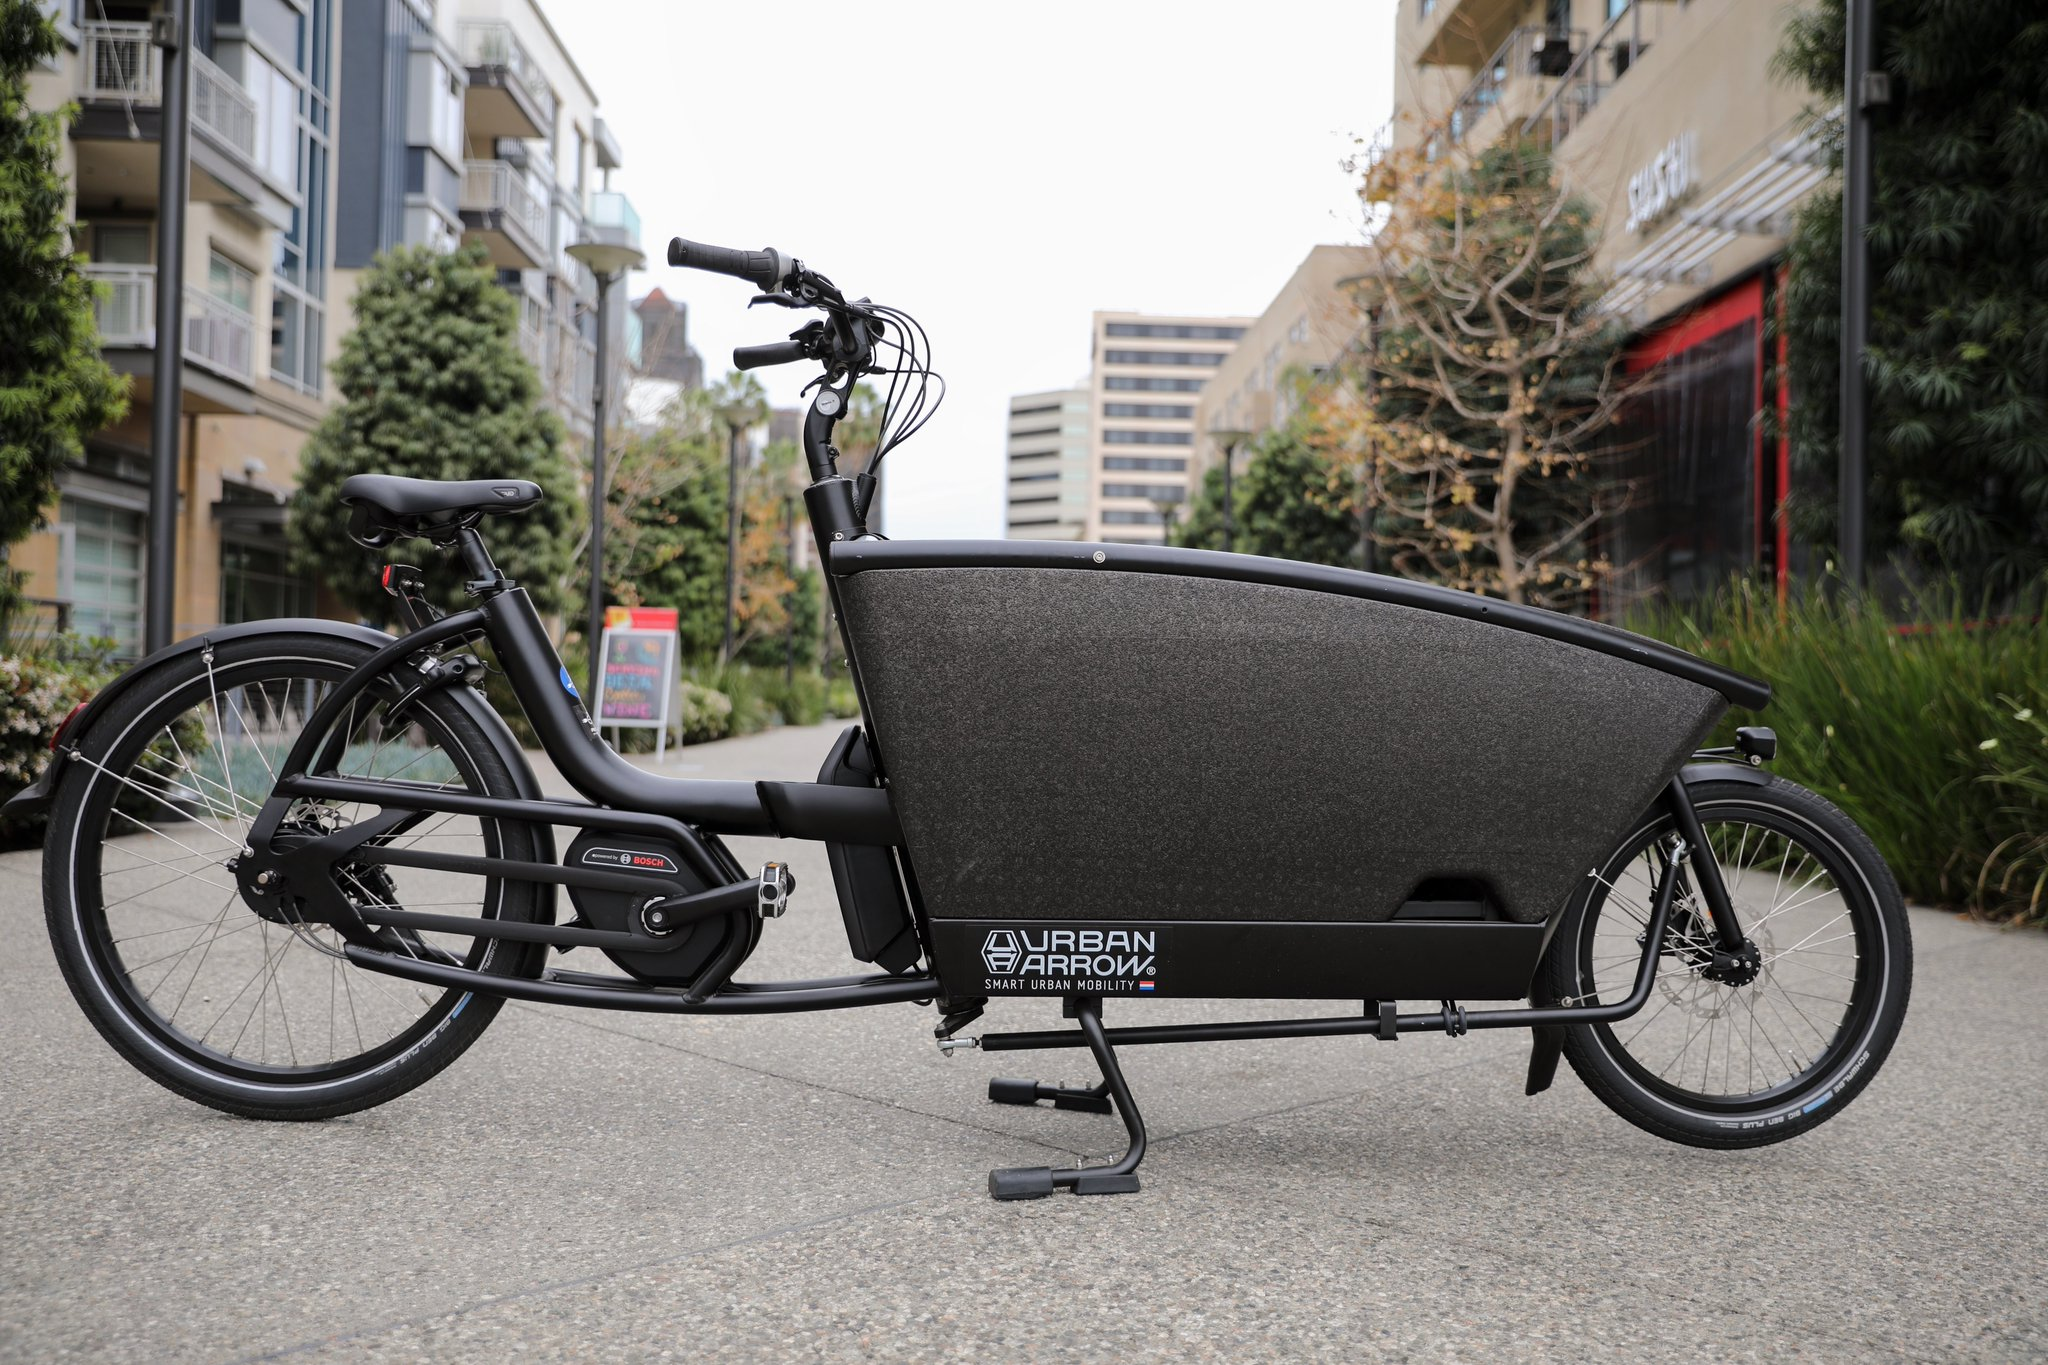 Urban Arrow Family takes you and your children wherever you want to go. No more worries about your busy schedule, kids needing to be picked up or dropped off, fetching groceries or shopping trips. #urbanarrow #electricbike #ebike #electricbikes #urbanarrowfamily https://t.co/R7ciFhlsy7